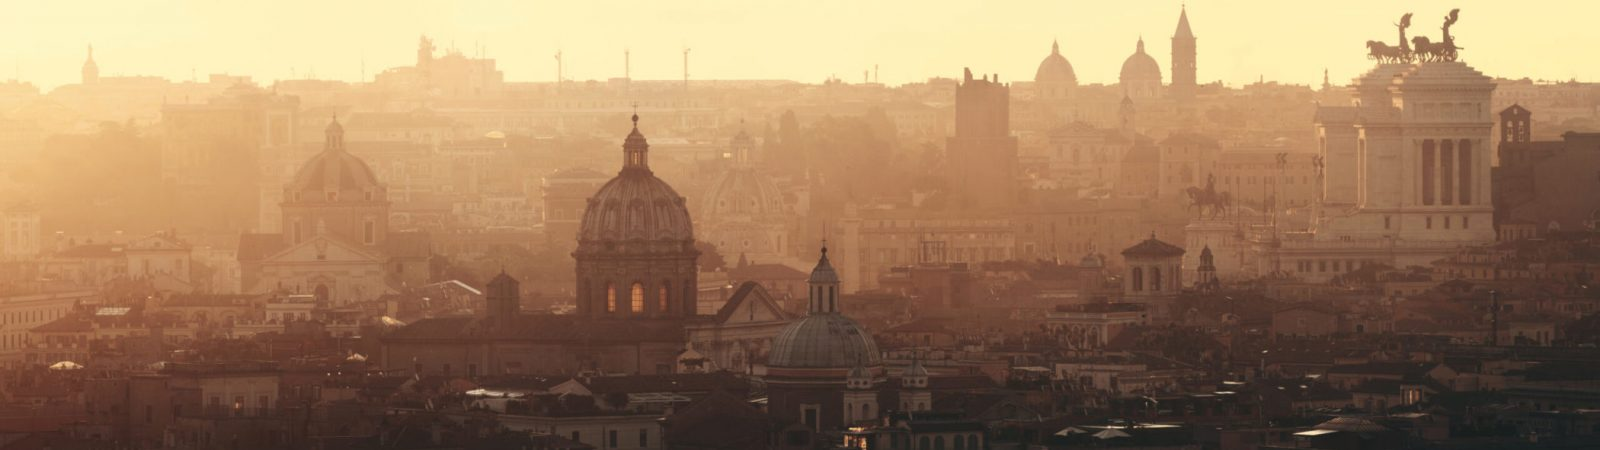 Roman Vacations Walking Tours - view of Rome